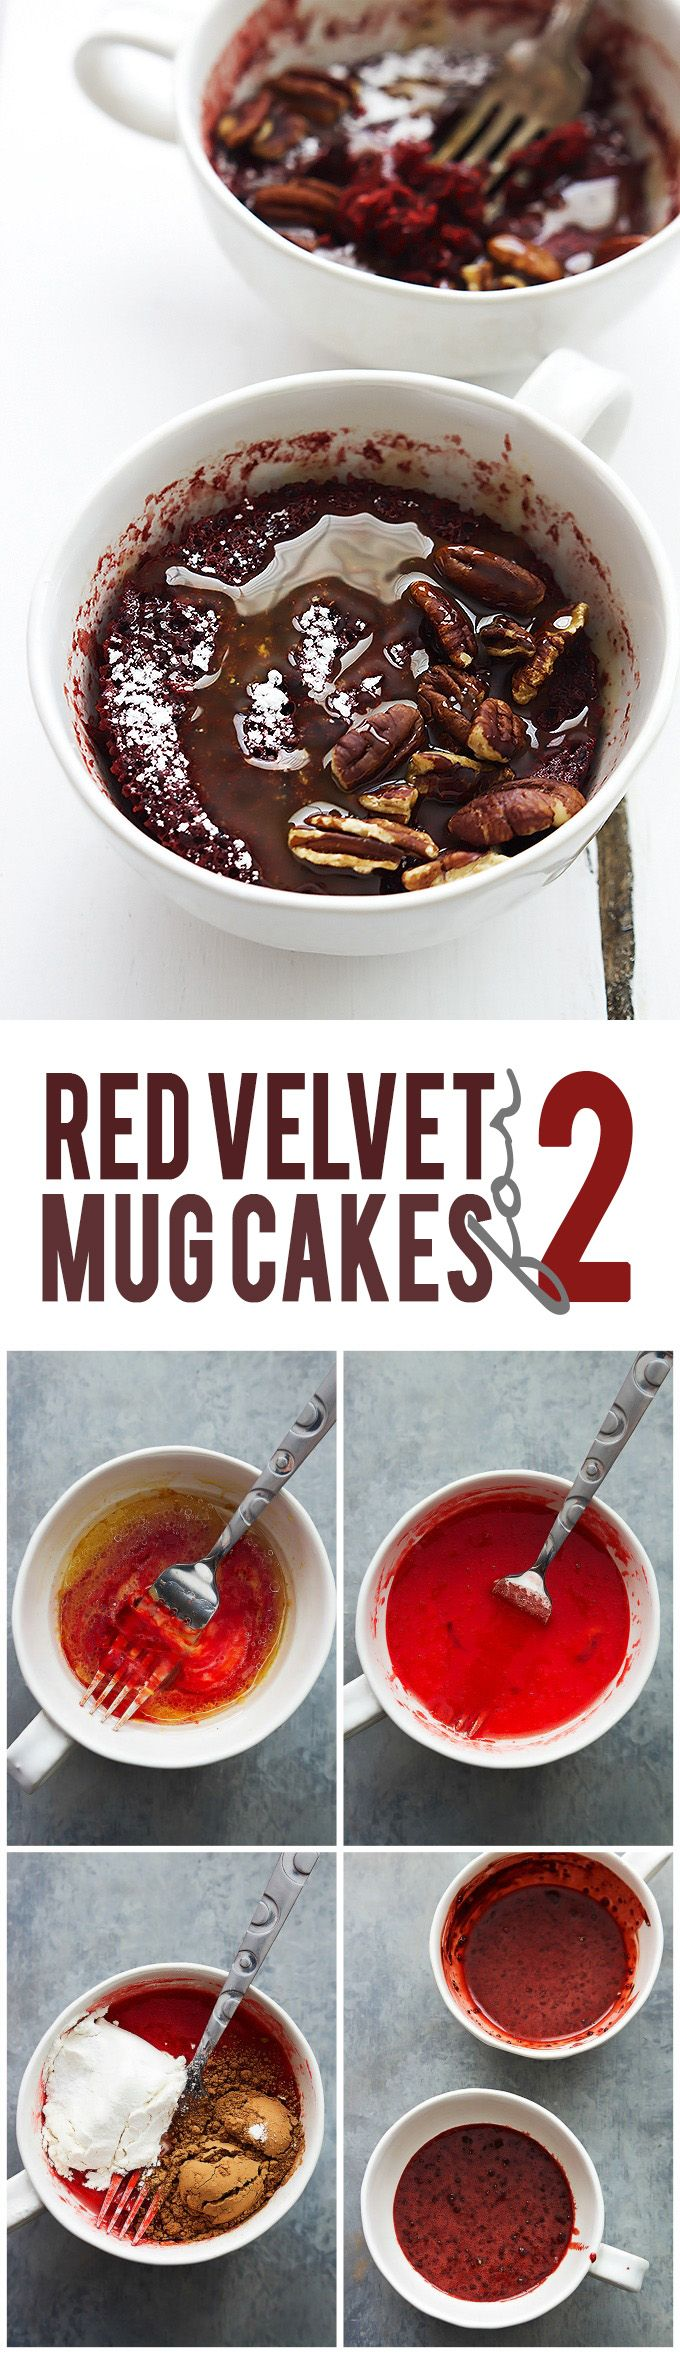 Quick and easy red velvet mug cakes for TWO, drizzled with caramel sauce and sprinkled with crunchy pecans! | Creme de la Crumb